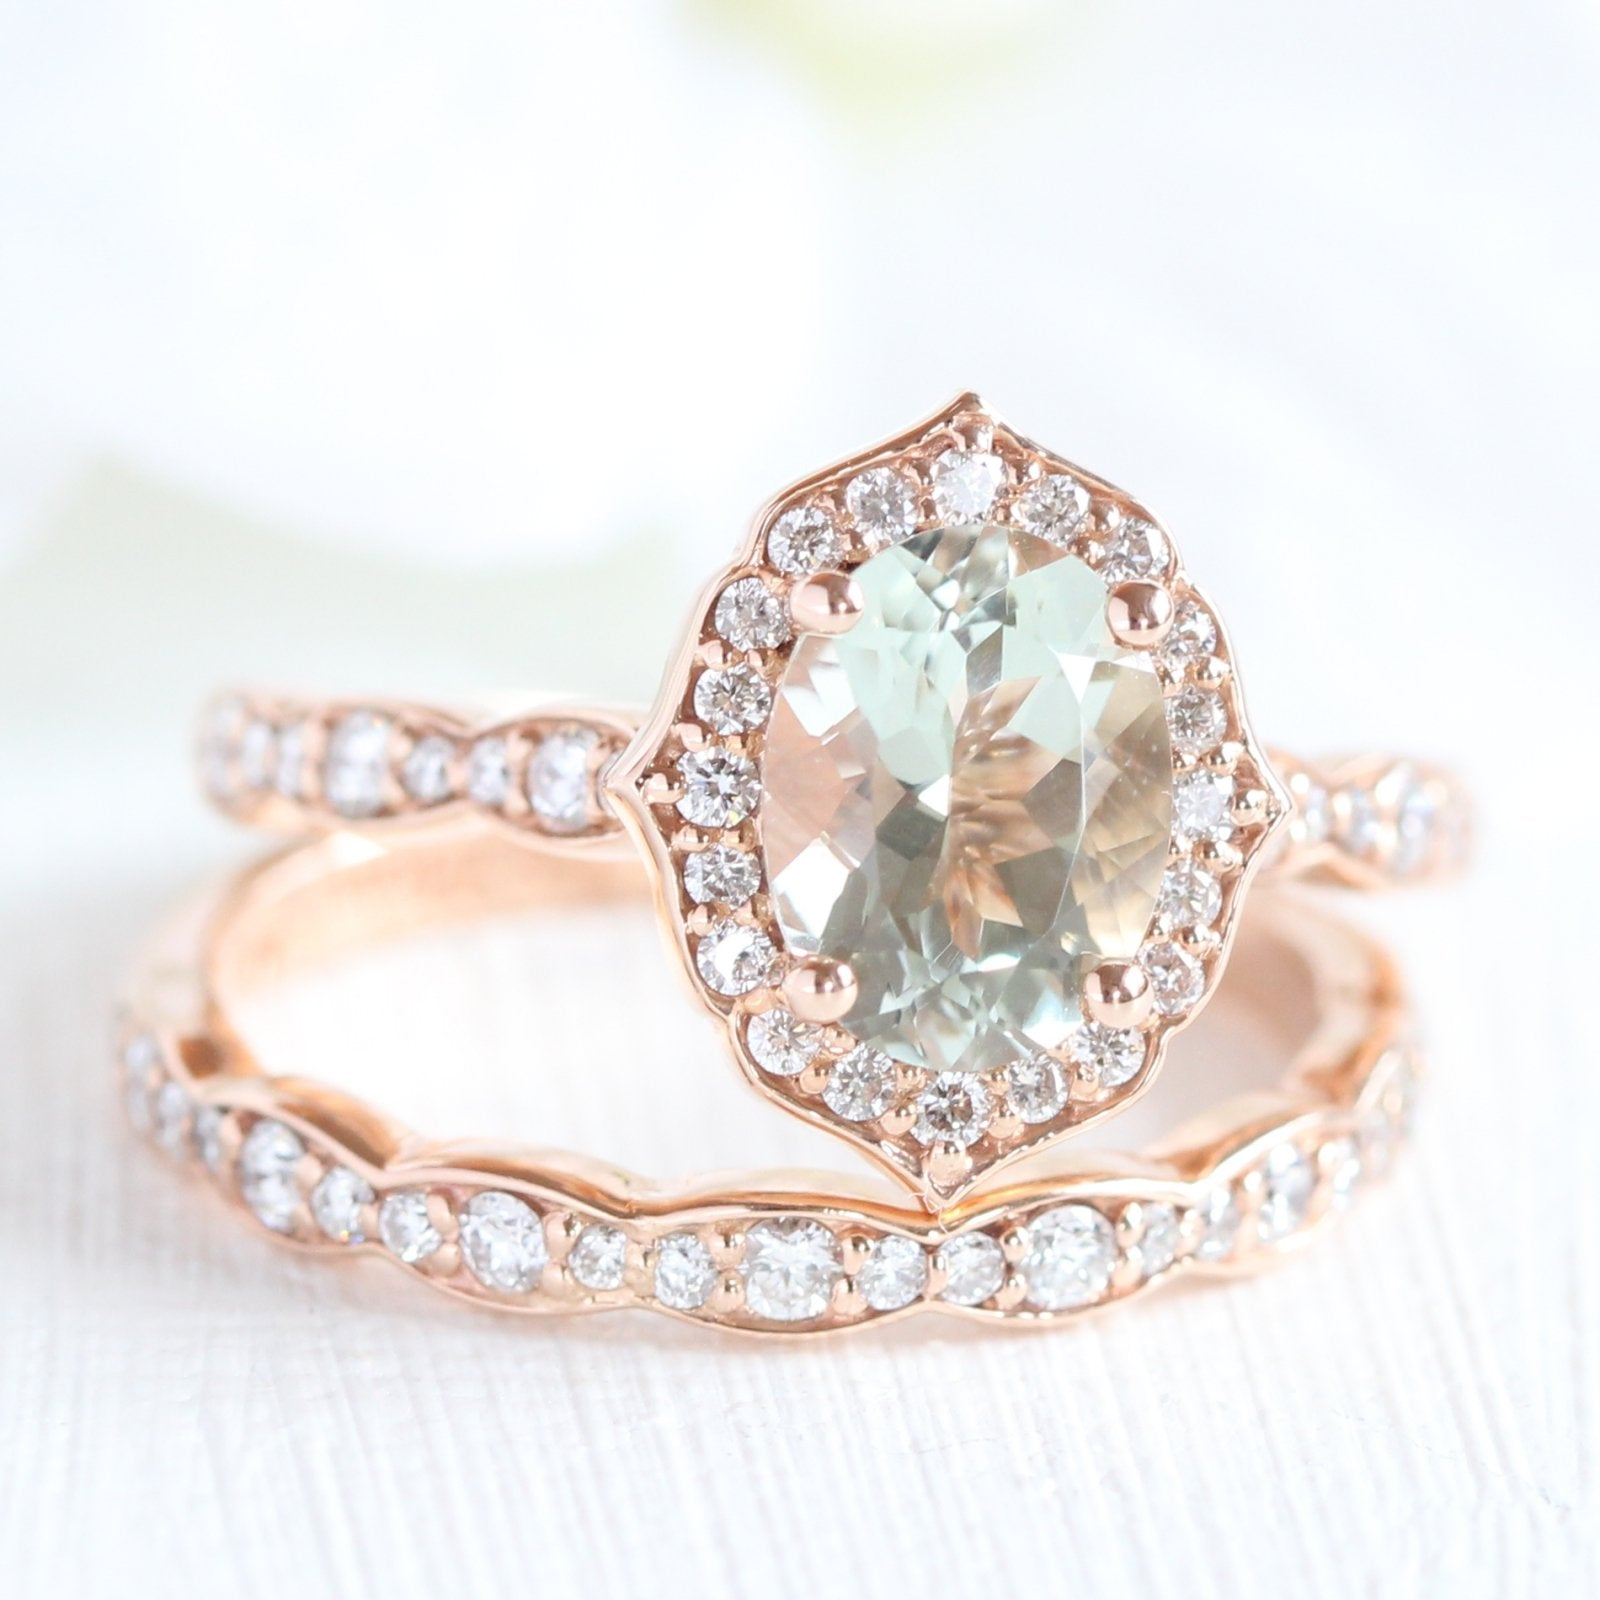 c2284e0554cc1 Oval Vintage Floral Bridal Set in Scalloped Band w/ Green Amethyst and  Diamond